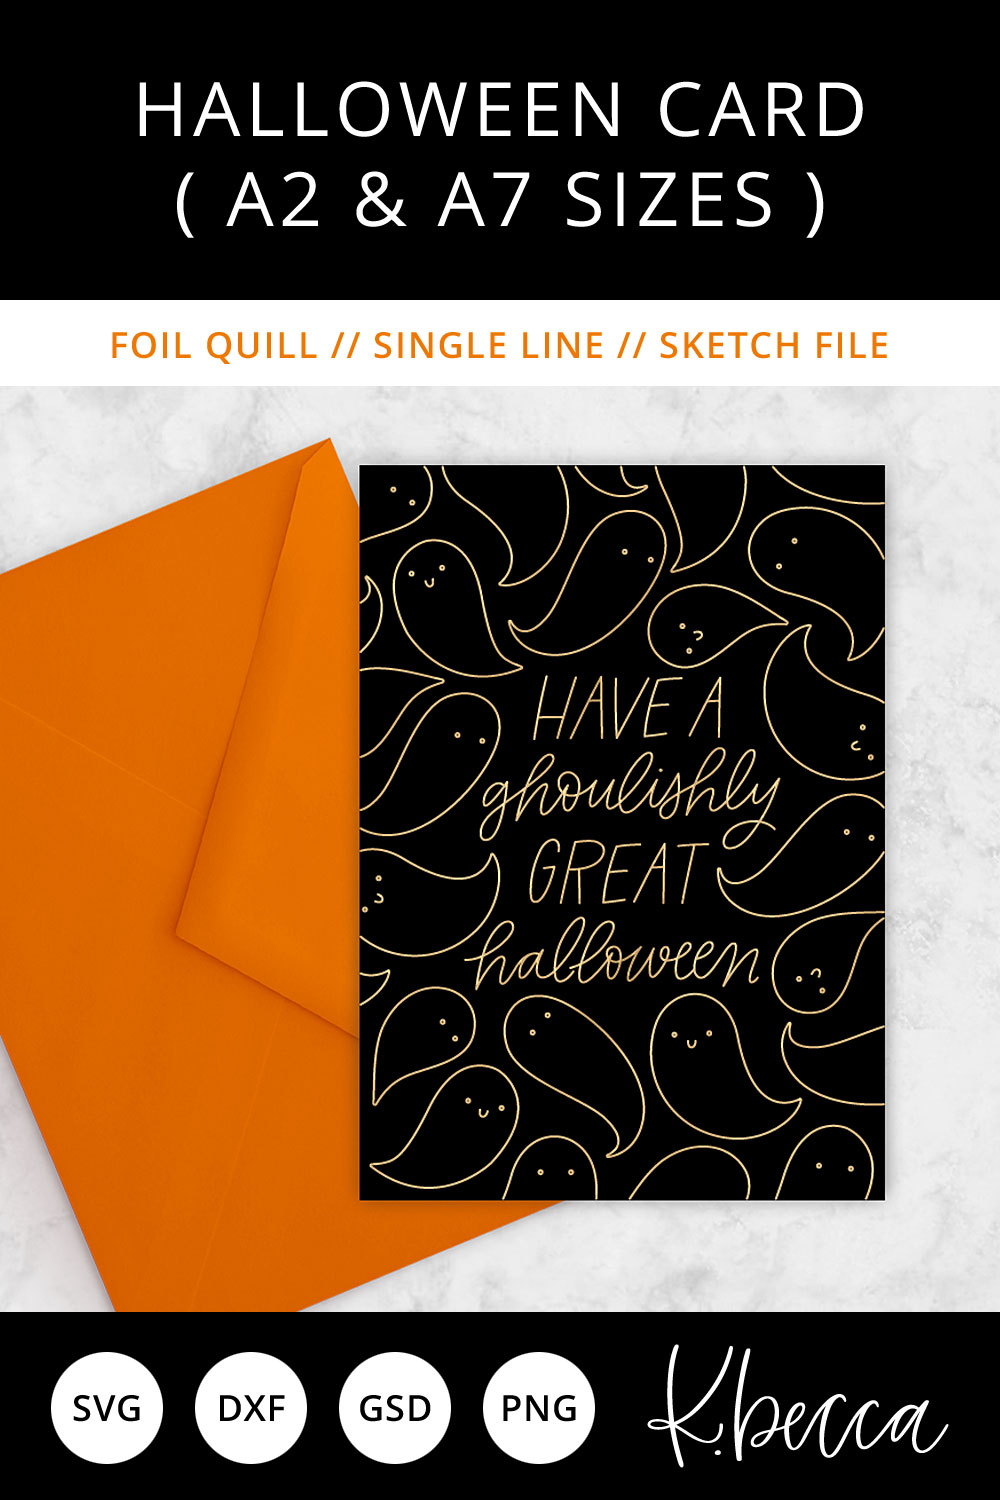 Foil Quill Sketch Halloween Card SVG - A2 & A7 Sizes example image 2